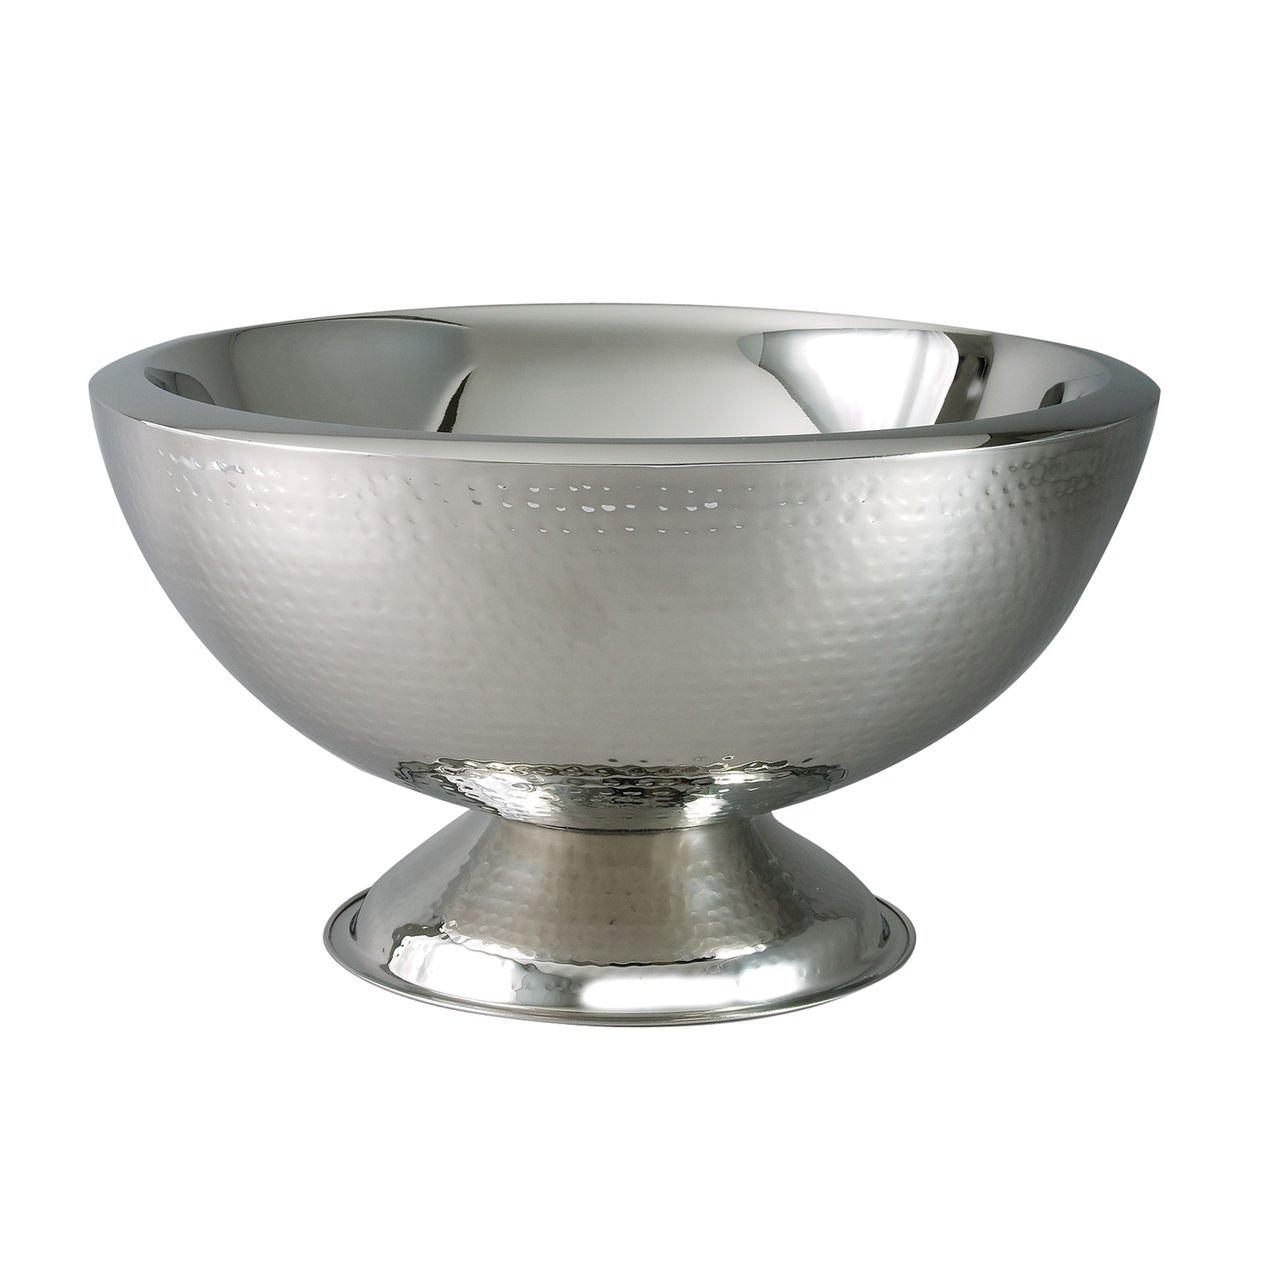 Hammered Punch Bowl DoubleWall 3 gal. by TableTop King by TableTop King (Image #1)